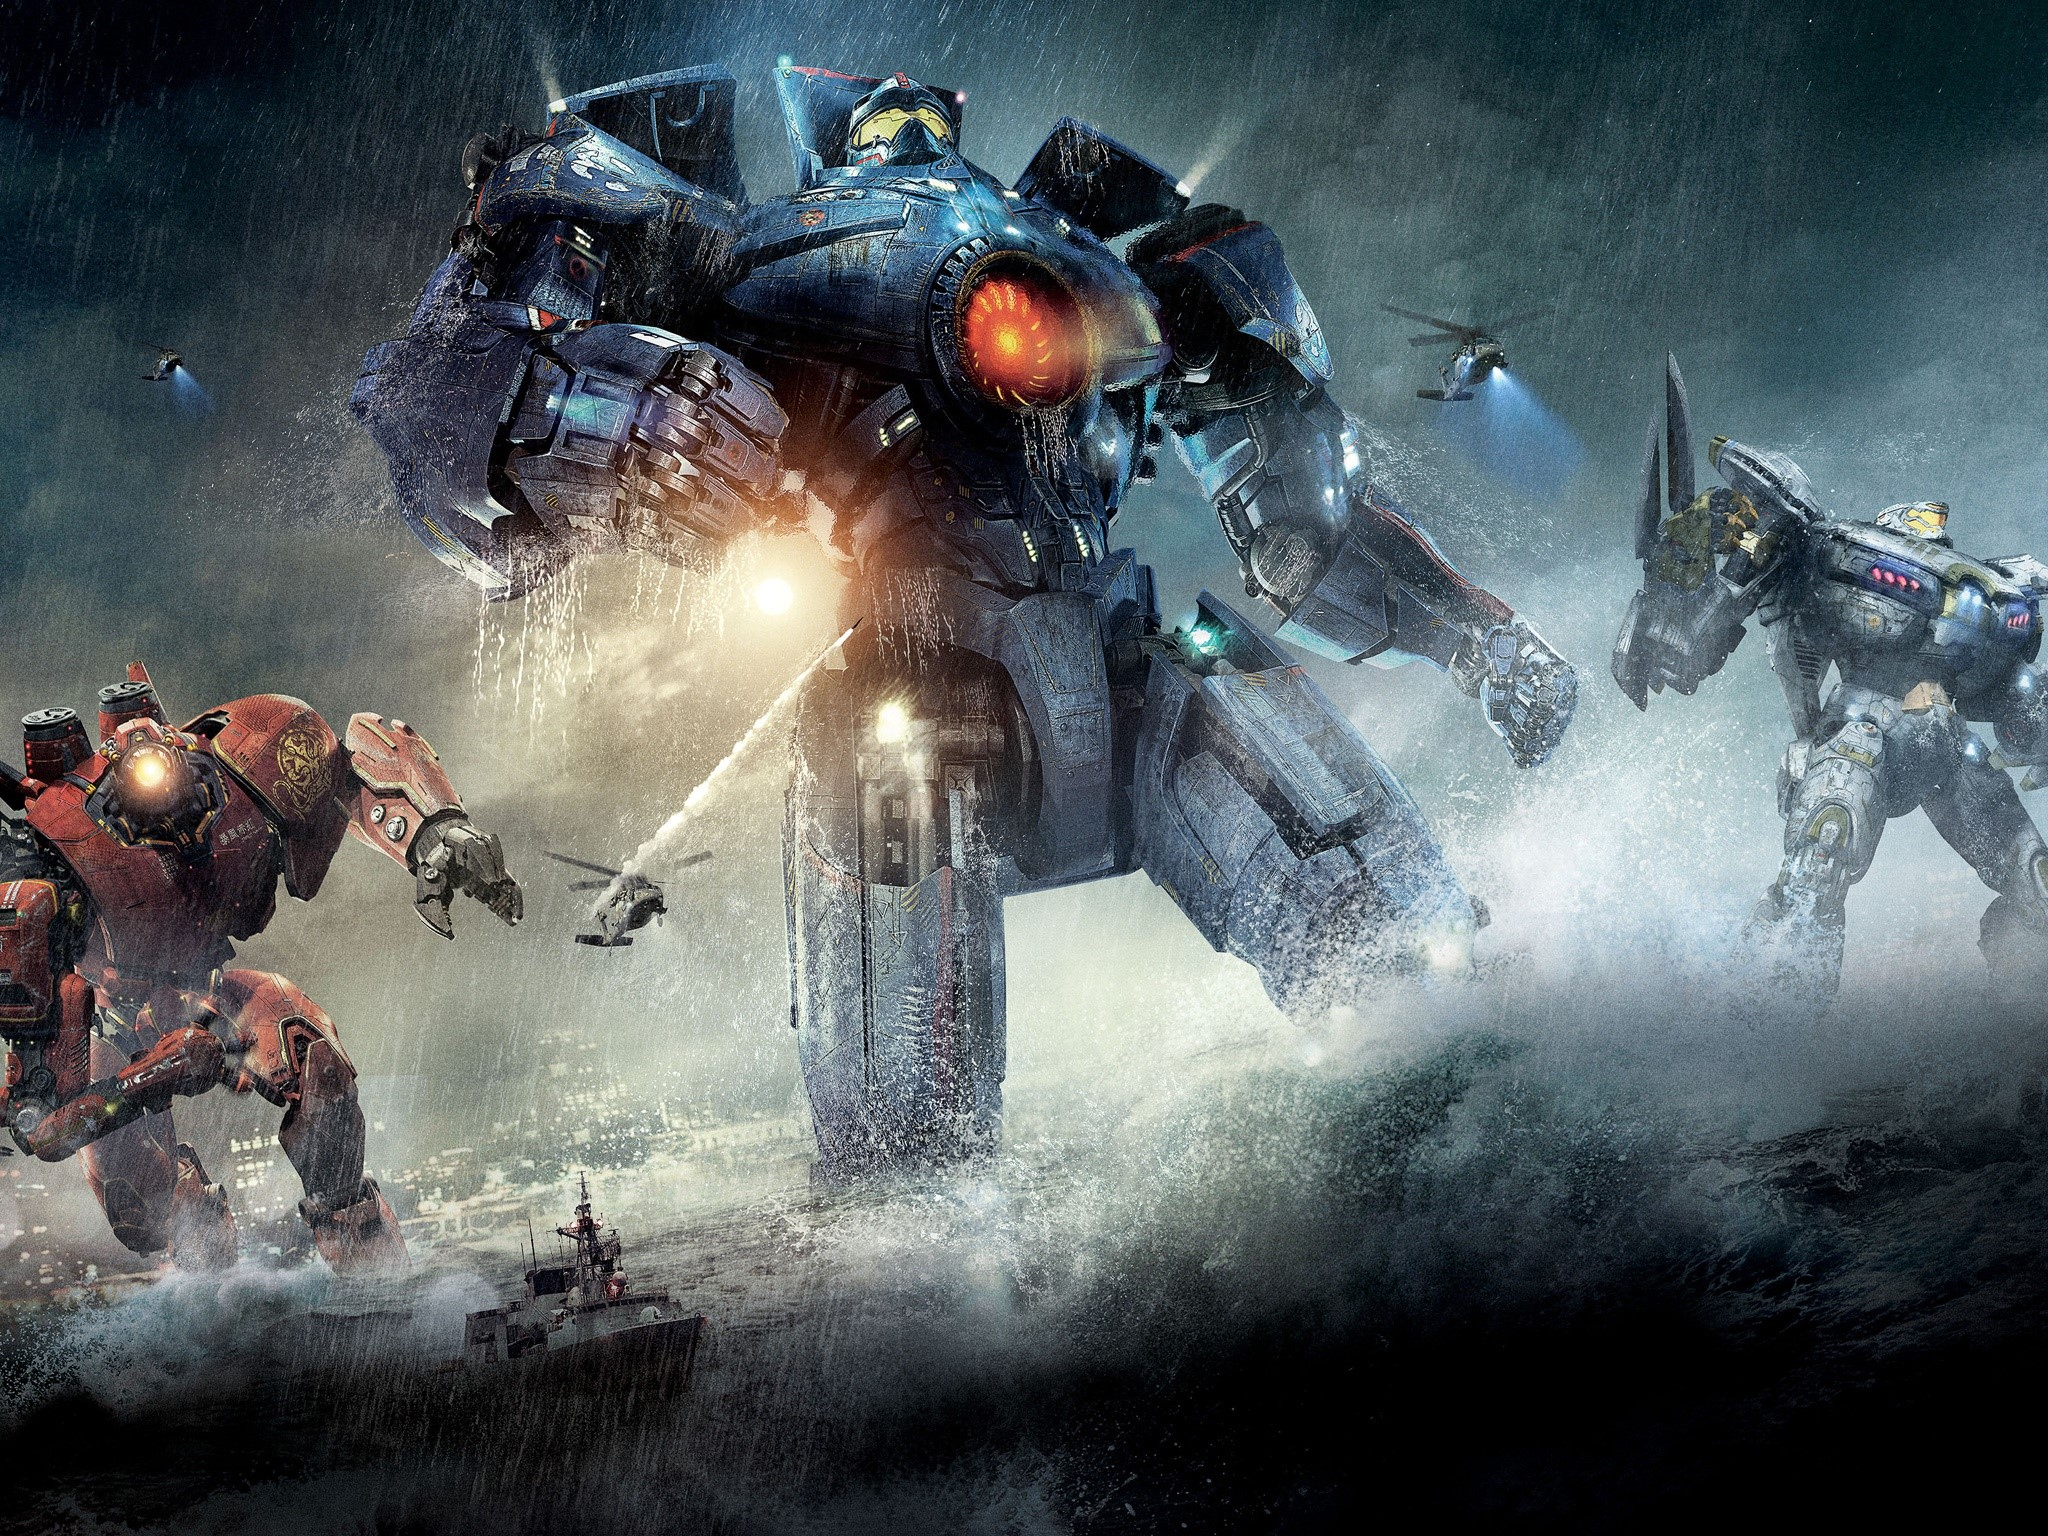 Wallpaper Jaegers en Titanes del pacifico Images